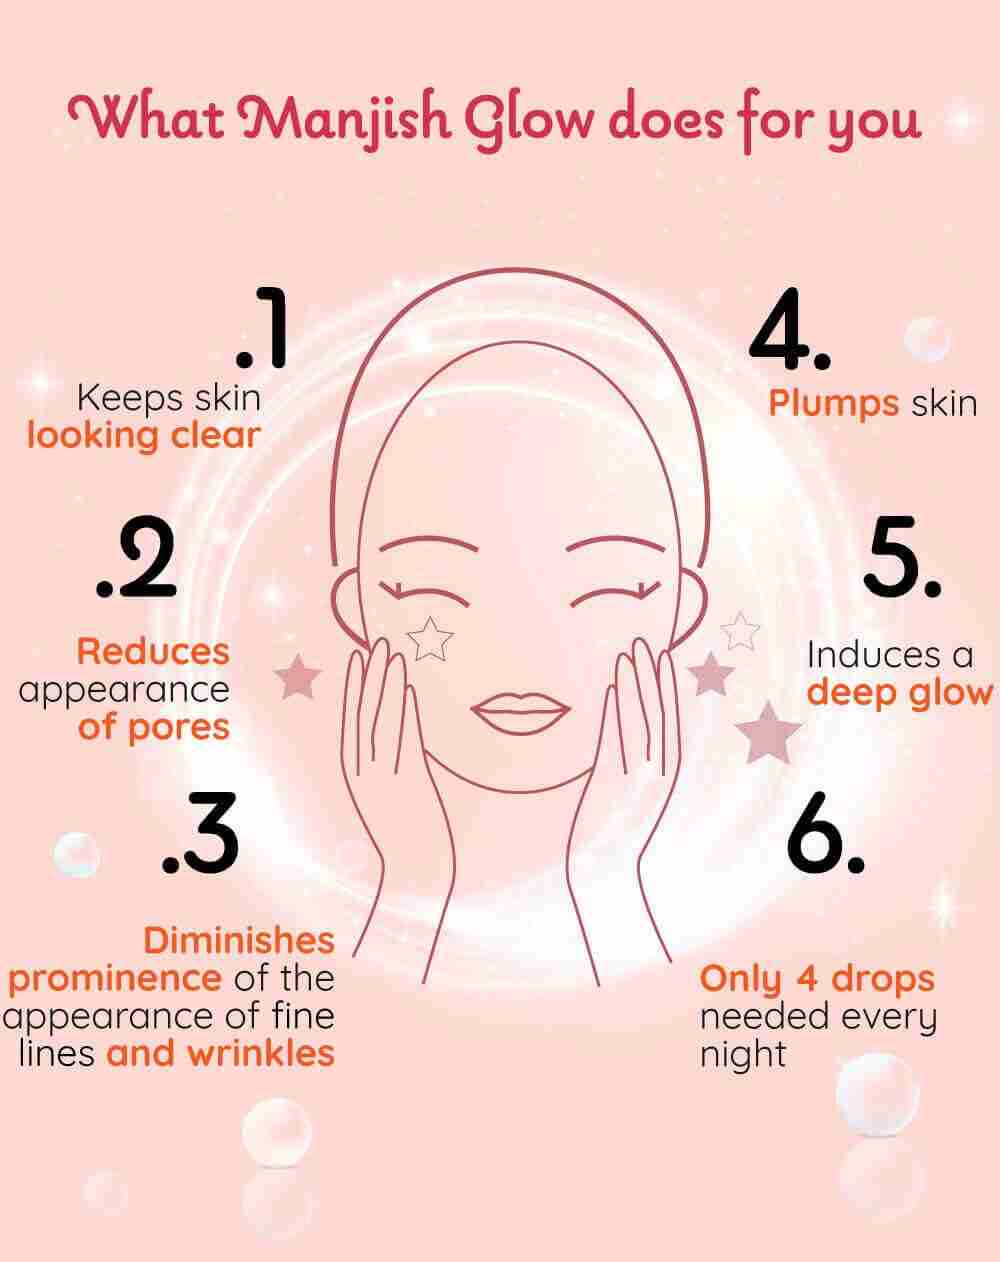 What Manjish Glow Does For you: 1. Keeps skin looking clear 2. Reduces appearance of pores 3. Diminishes appearance of fine lines and wrinkles 4. Plumps skin 5. Only 4 drops needed every night 6. Induces a deep glow